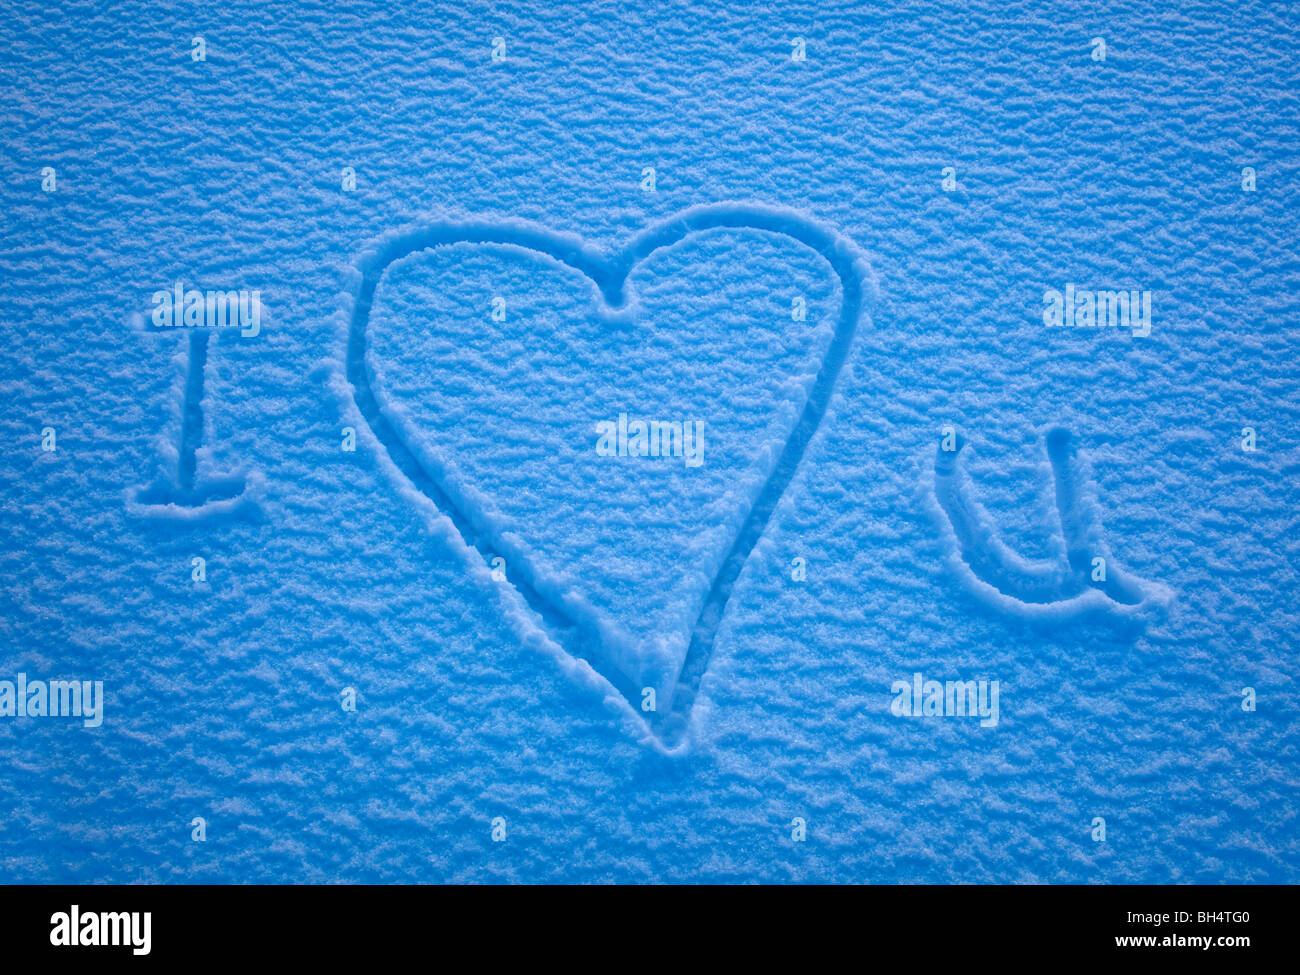 i love you spelled out in the snow with the heart symbol replacing